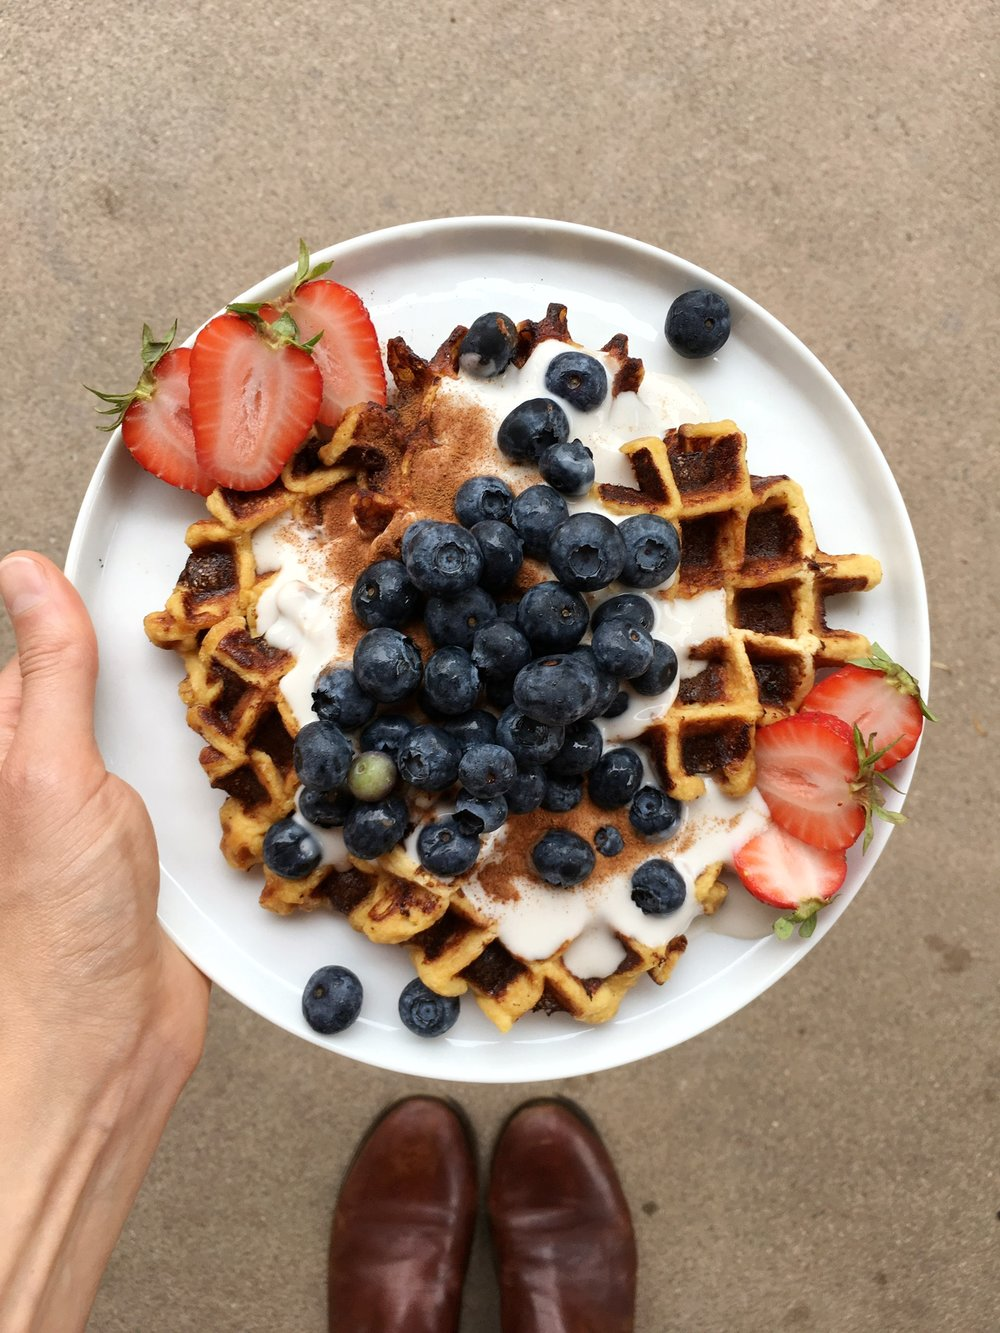 Protein Waffles - These protein waffles are a perfect post workout breakfast, especially topped with dairy free yogurt and fresh berries!